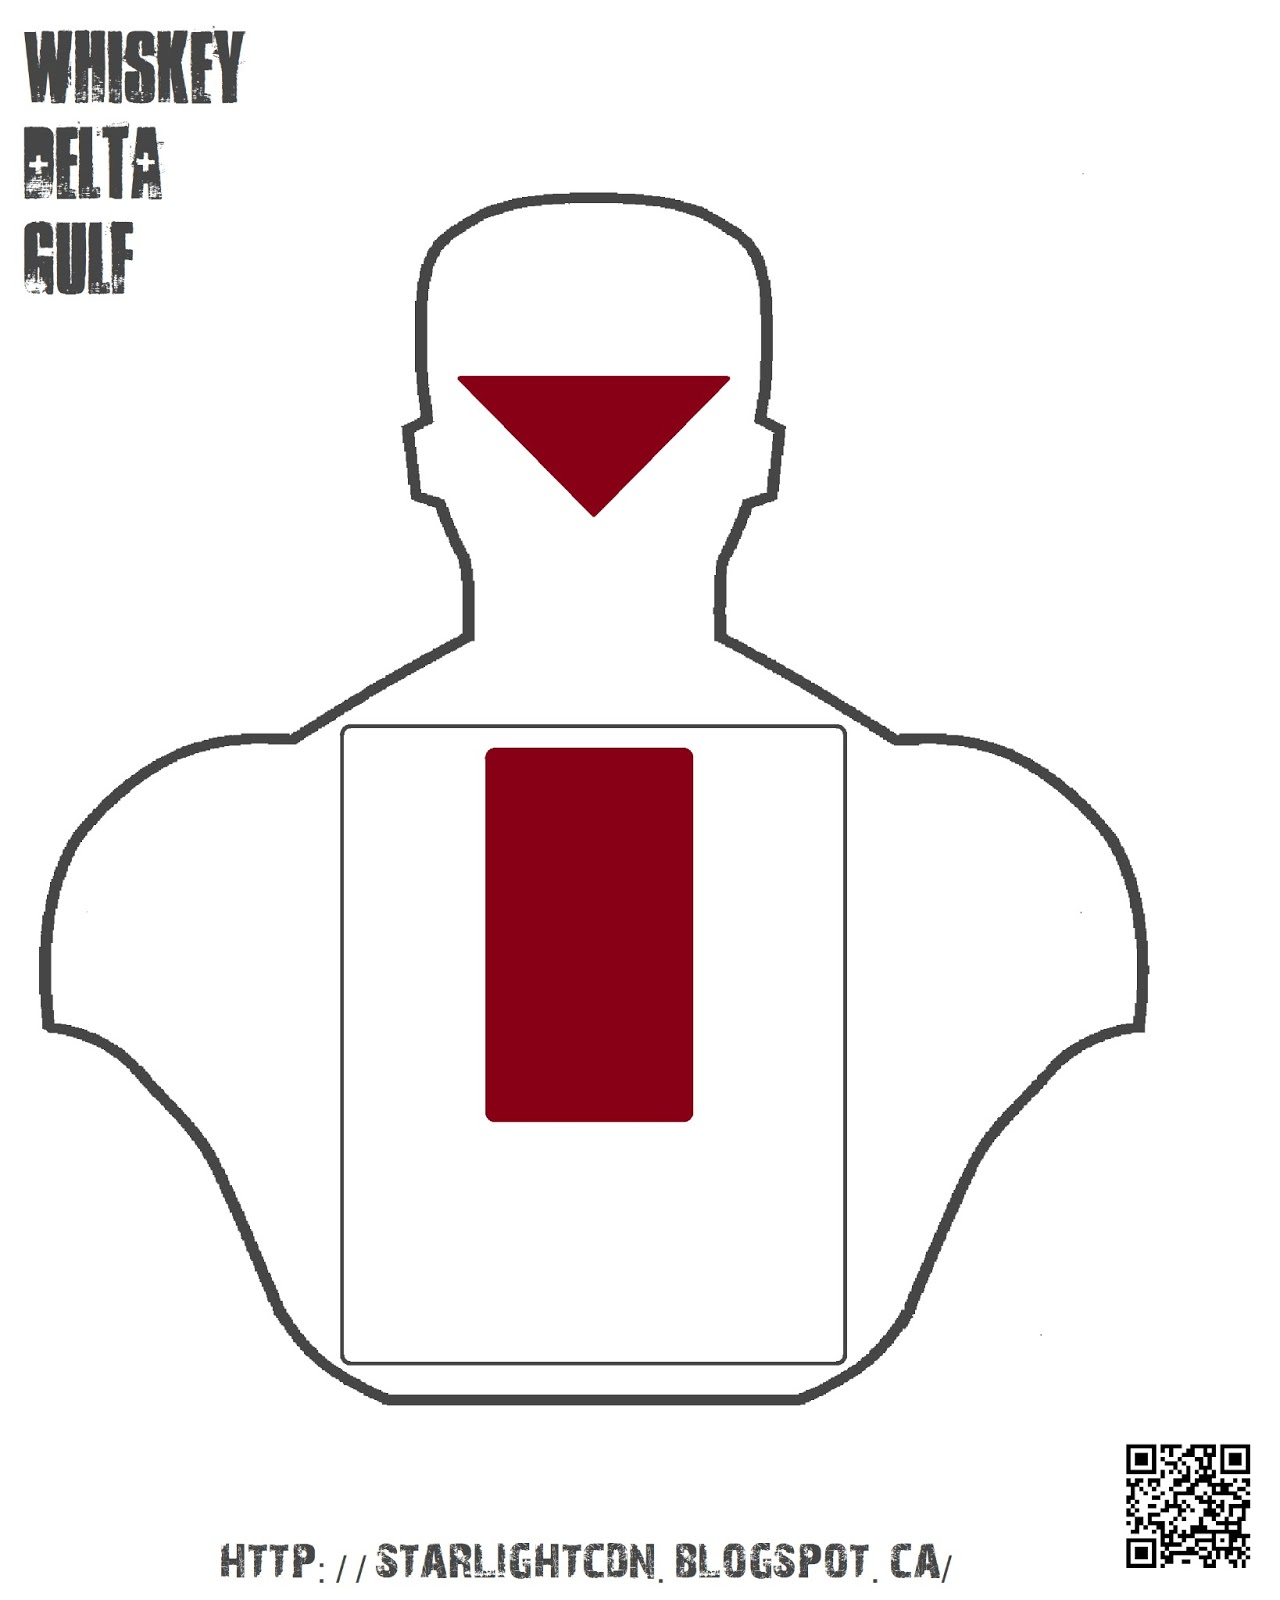 This is a photo of Massif Printable Pistol Drill Targets